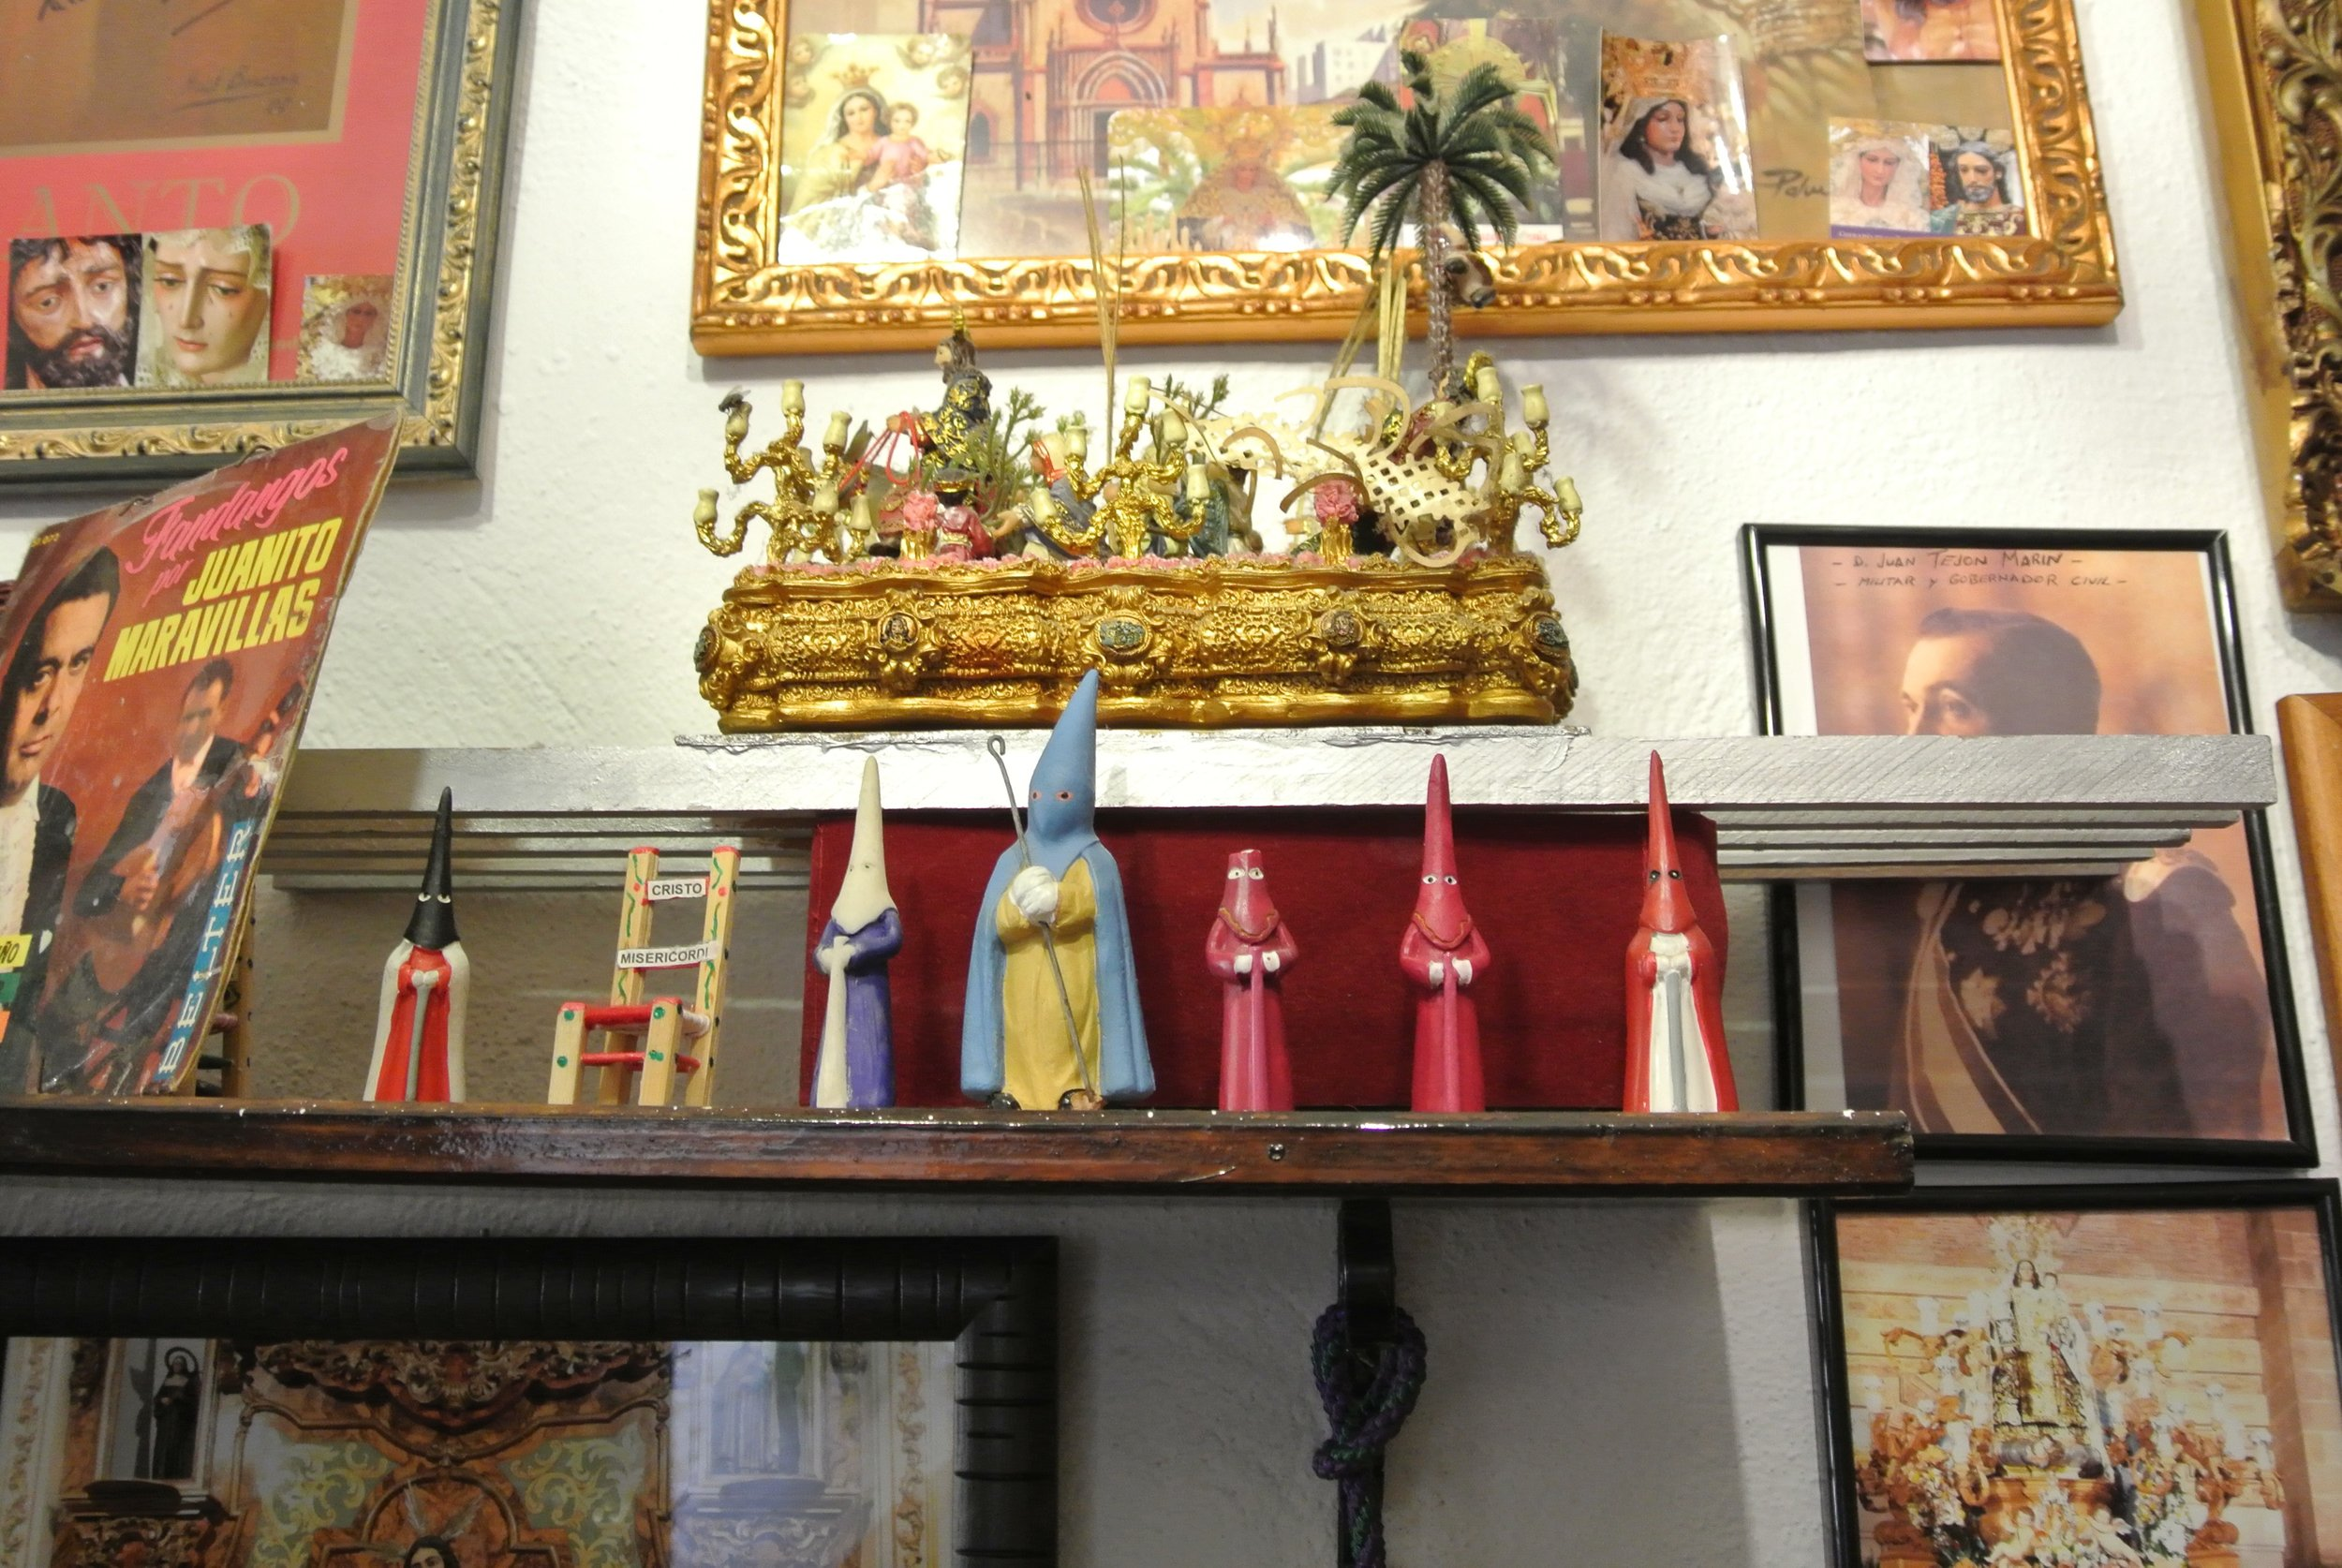 A shelf filled with nazareno figurines at Taberna Cofrade las Merchanas in Málaga. The different colored robes indicate which hermandad (brotherhood) the individual belongs to.